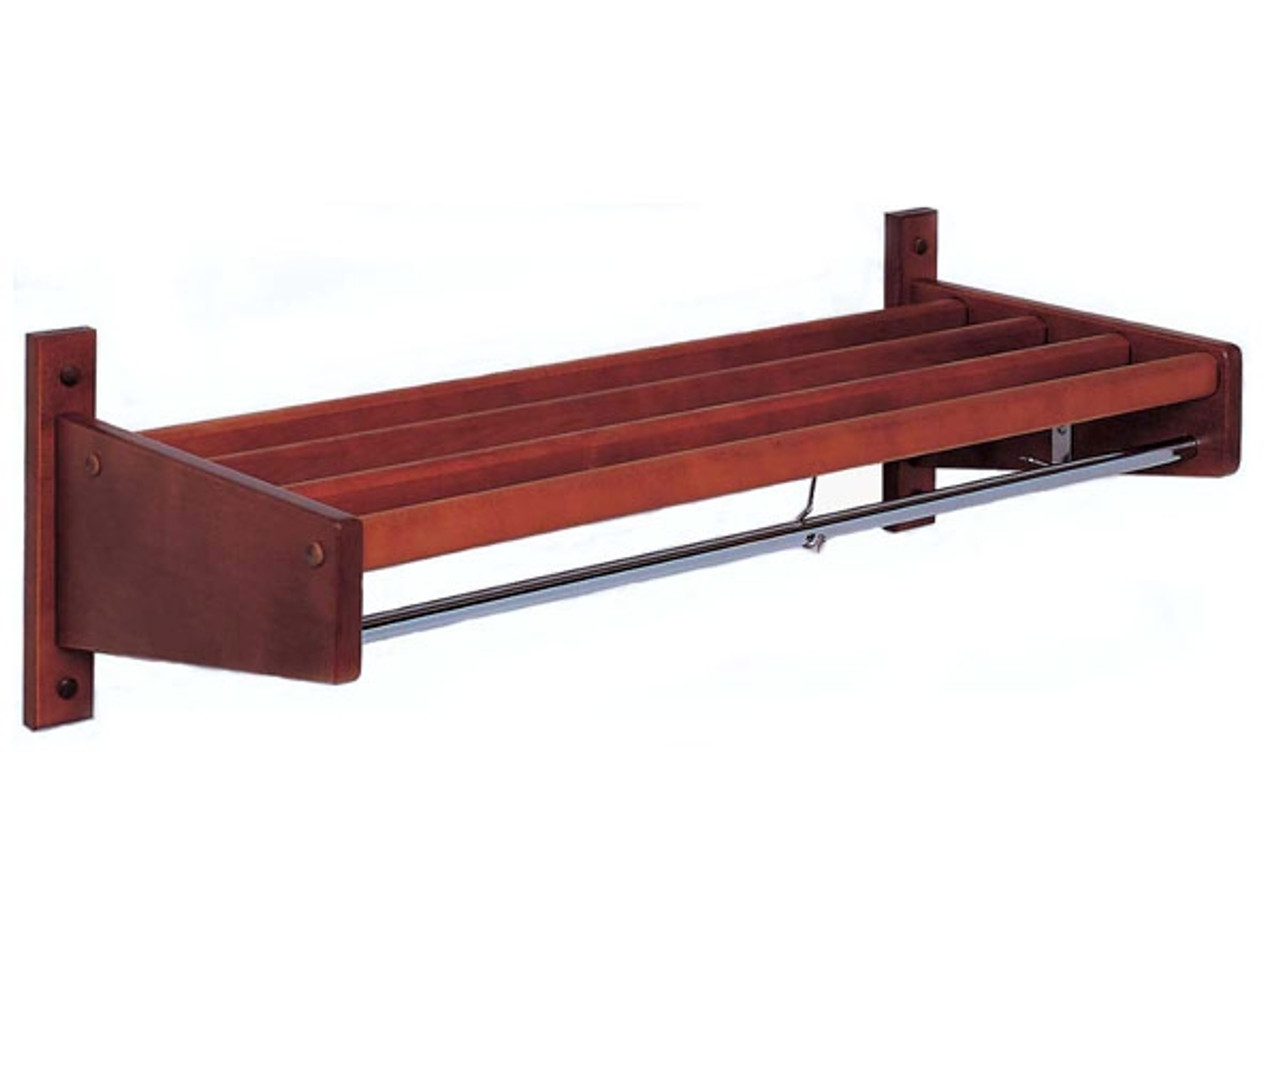 Magnuson CLM Wooden Coat Racks